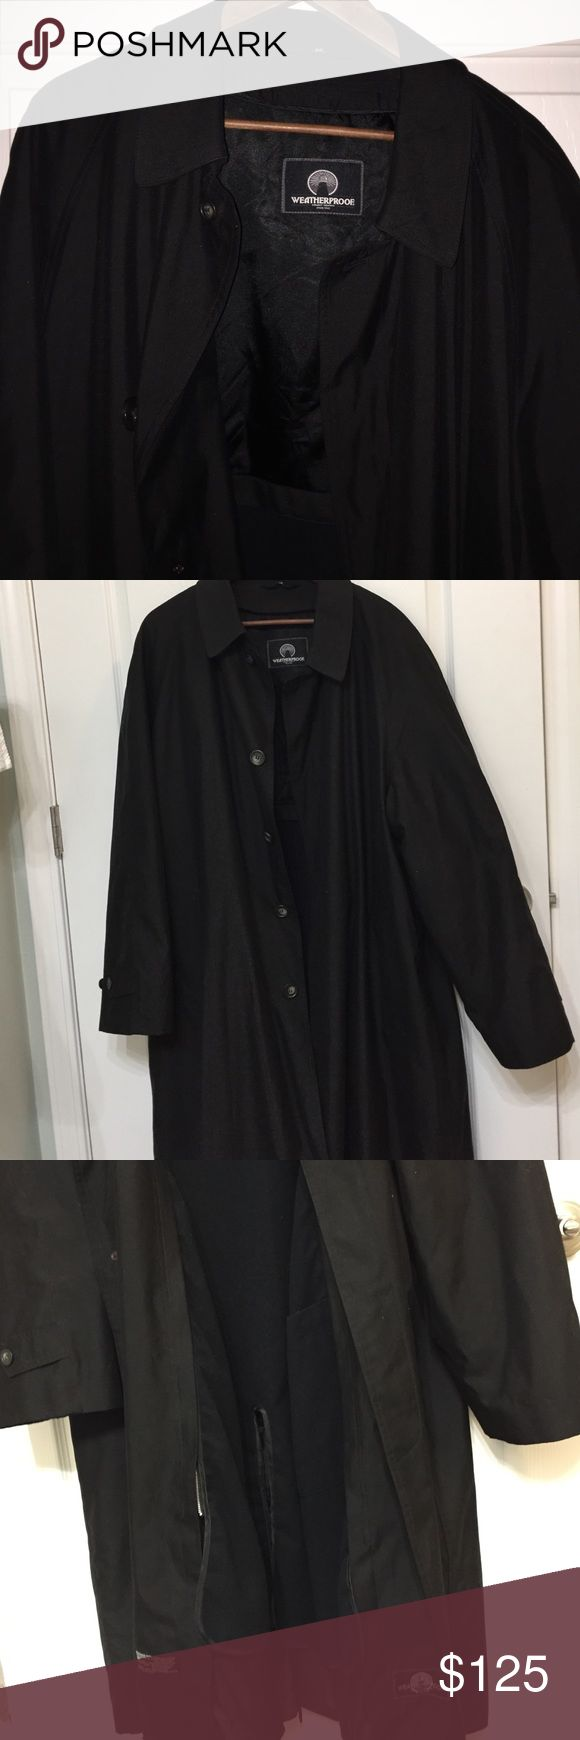 Men's Weatherproof Trench/Rain Coat Microfiber shell with water repellant lining. Liner is removable. Dry clean only. Used a few times but in EXCELLENT condition. No flaws. This Trench is stunning! Waterproof Jackets & Coats Trench Coats